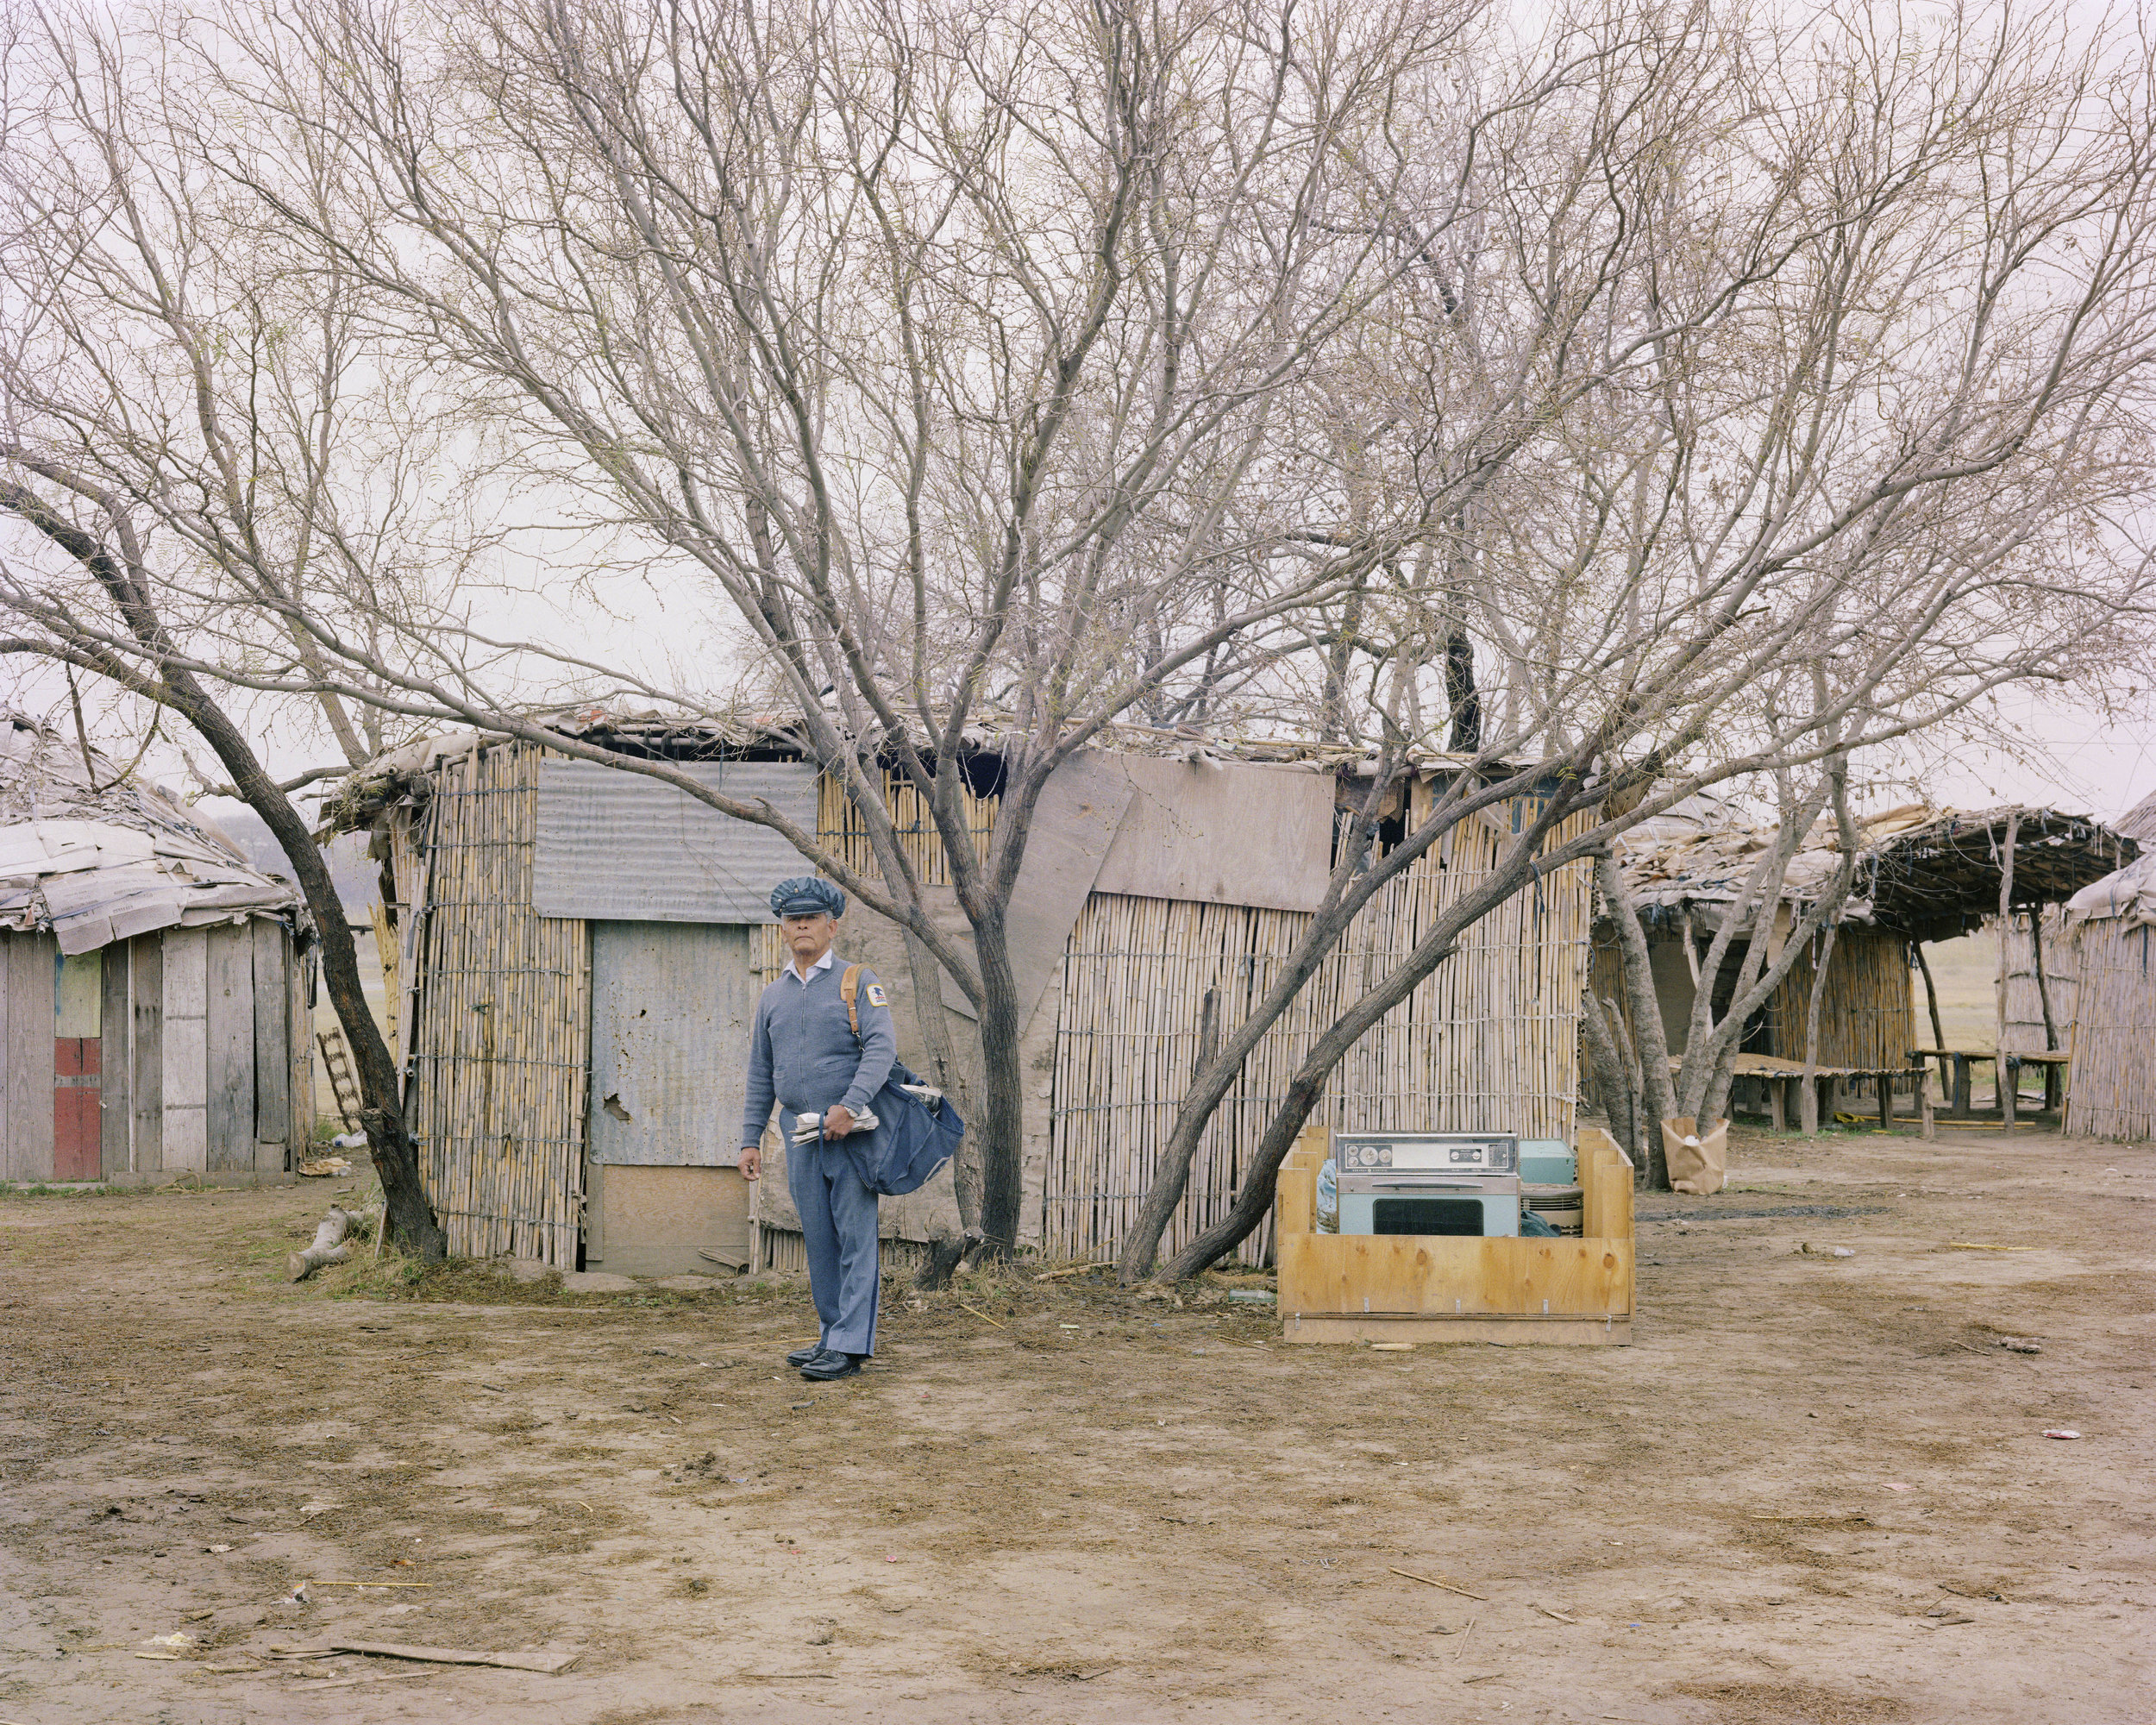 A Letter Carrier Delivering Mail in a Kickapoo Tribe Village, Eagle Pass, Texas, January 1983